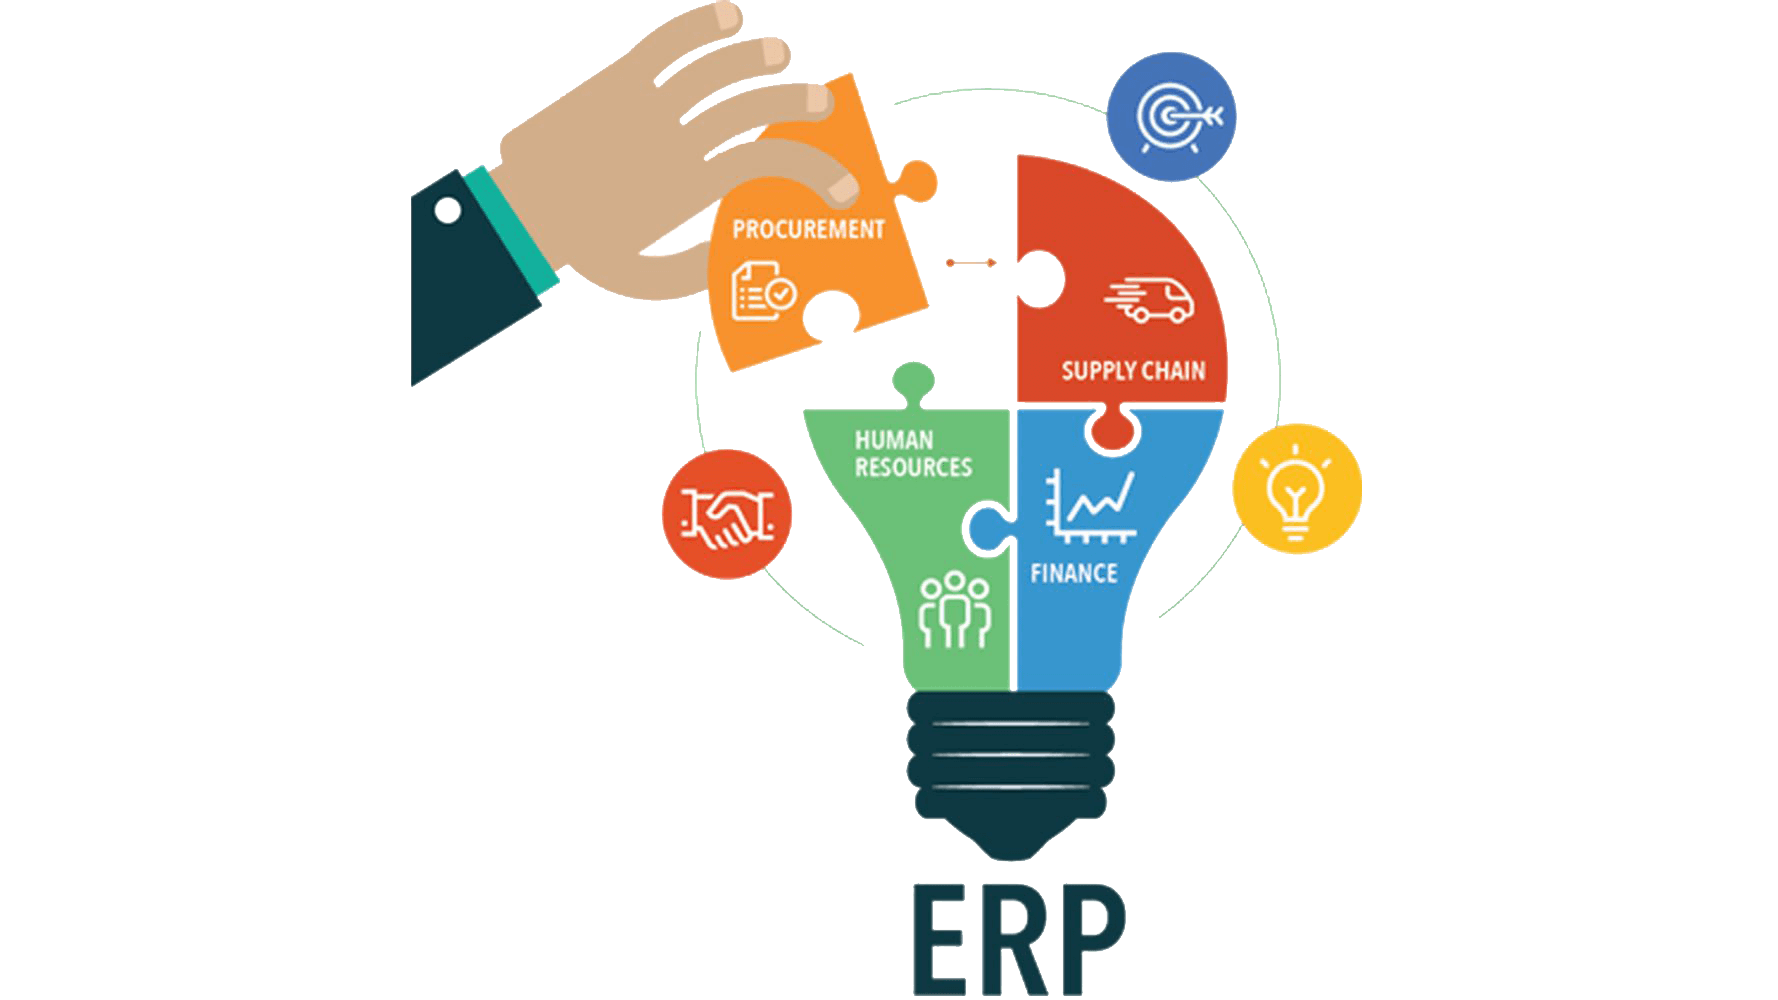 erp-images